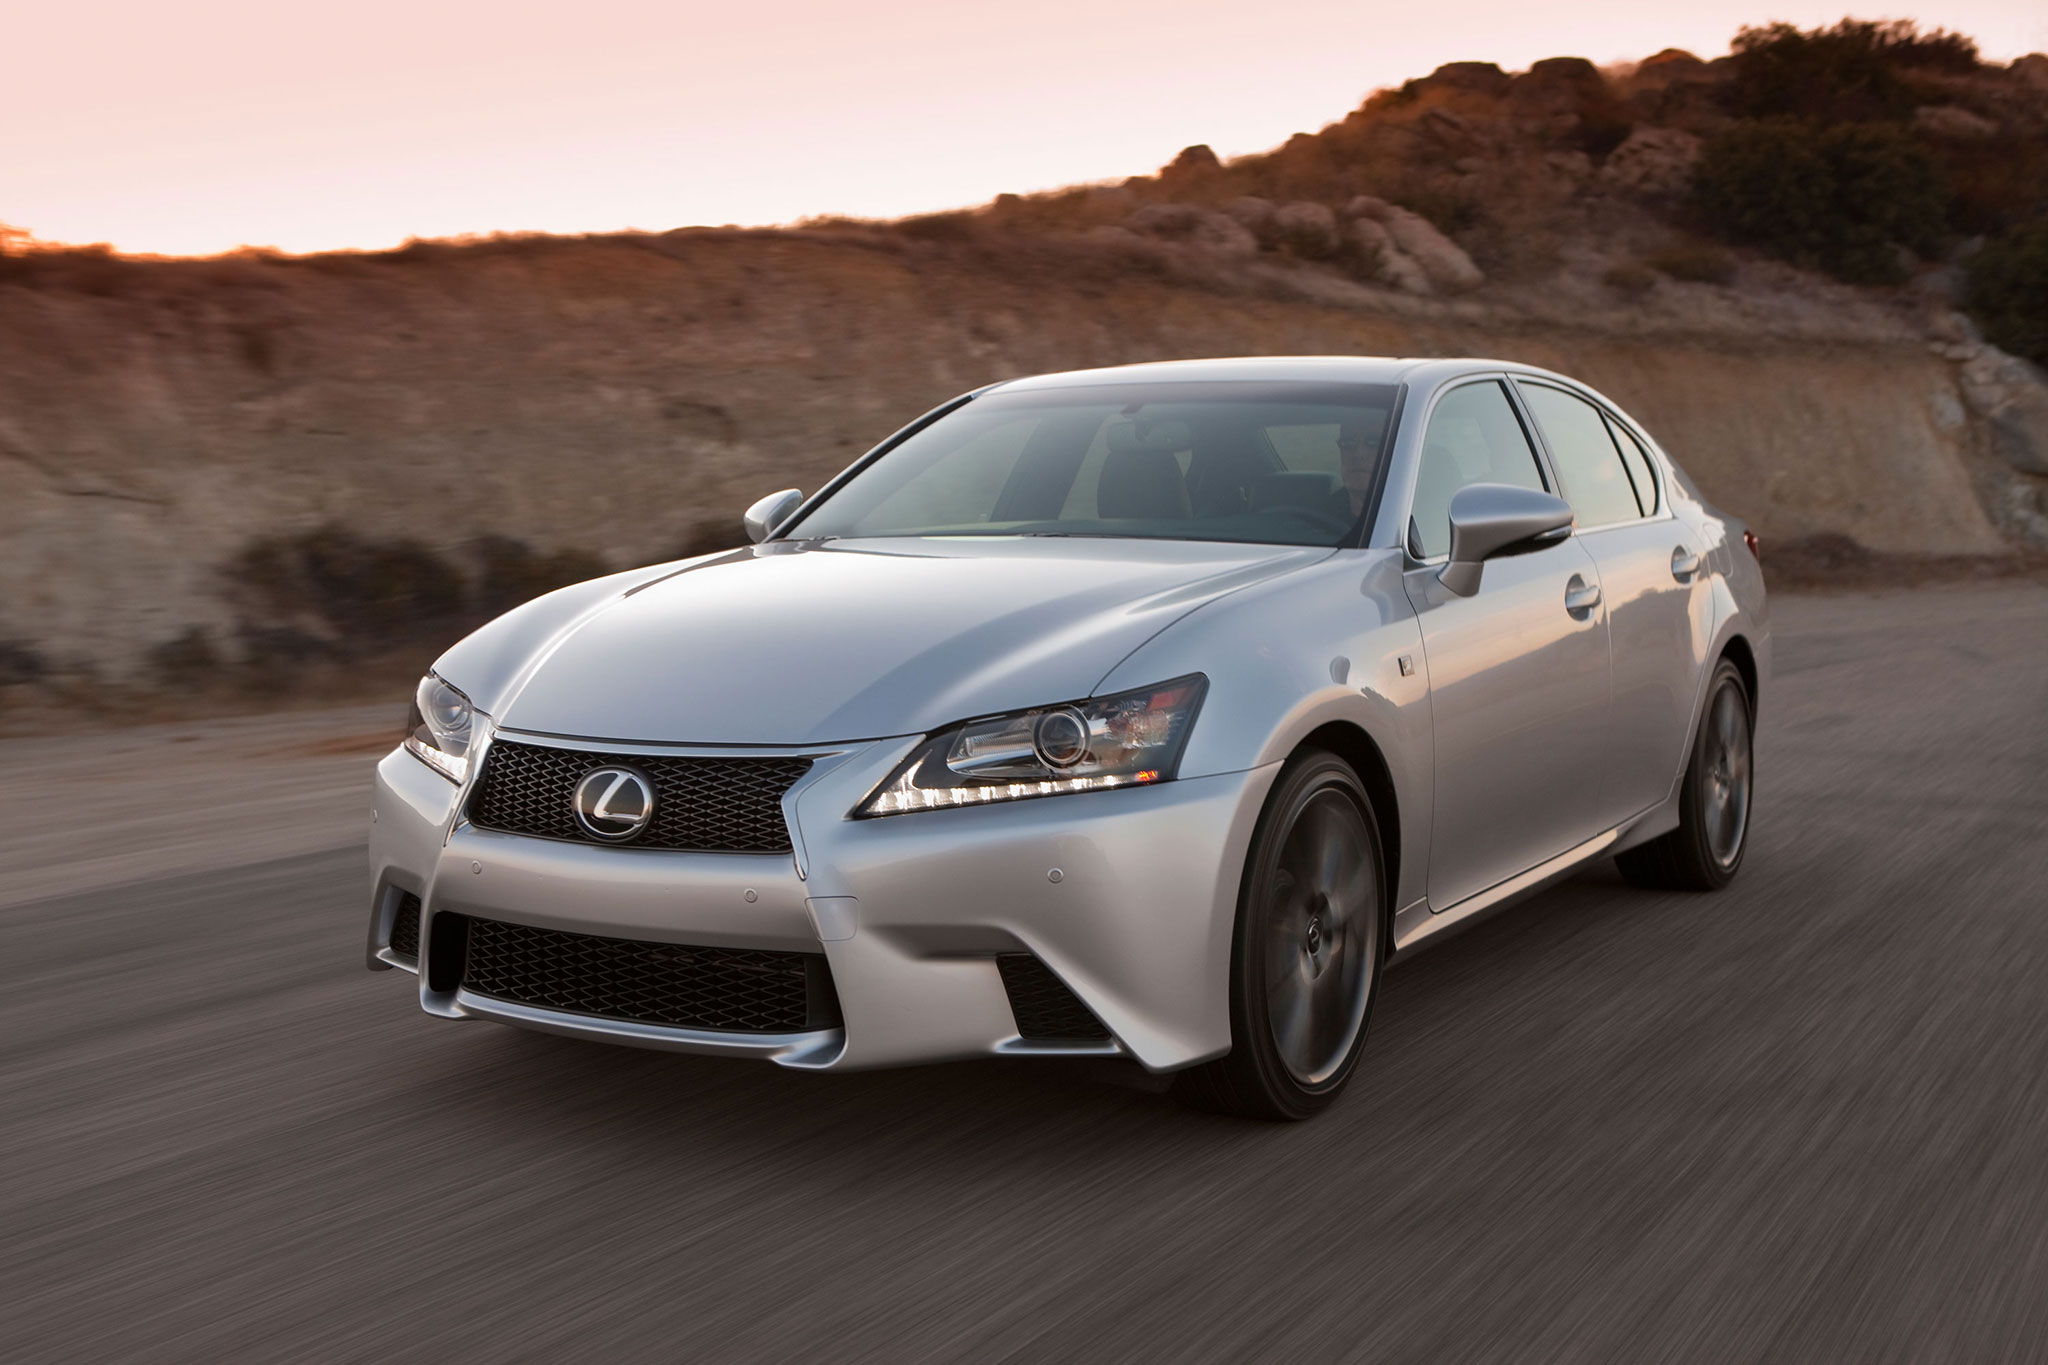 Review: Lexus GS 350 AWD